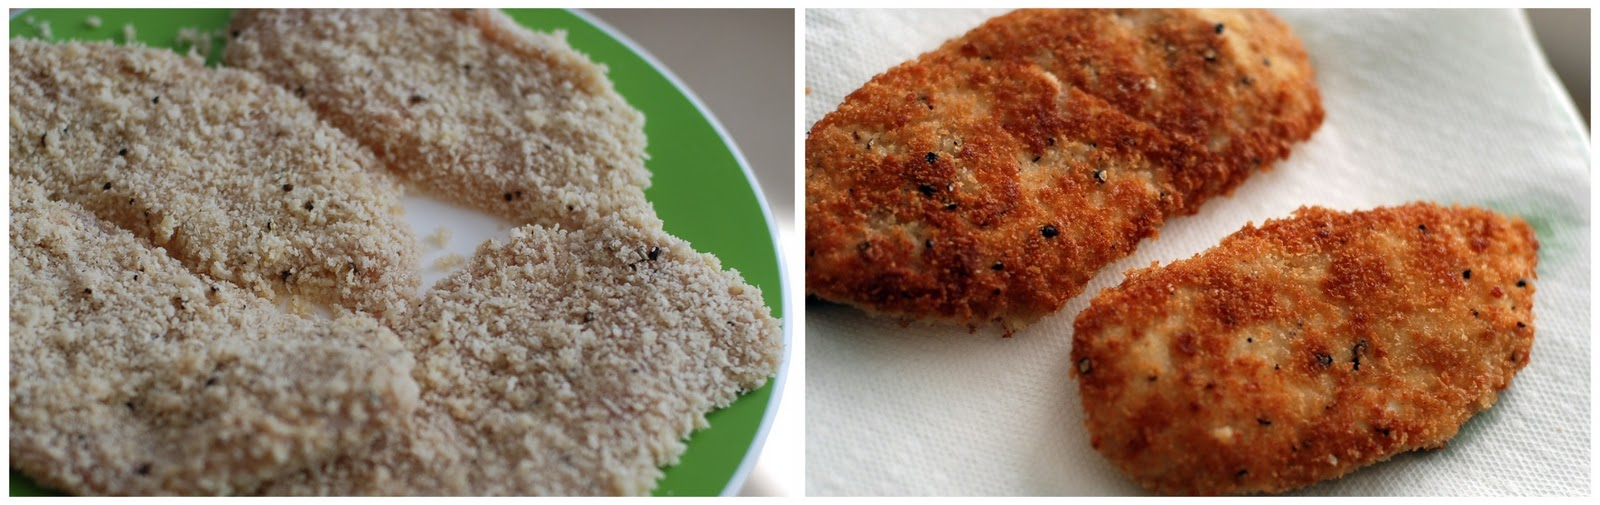 how to cook kingfish cutlets